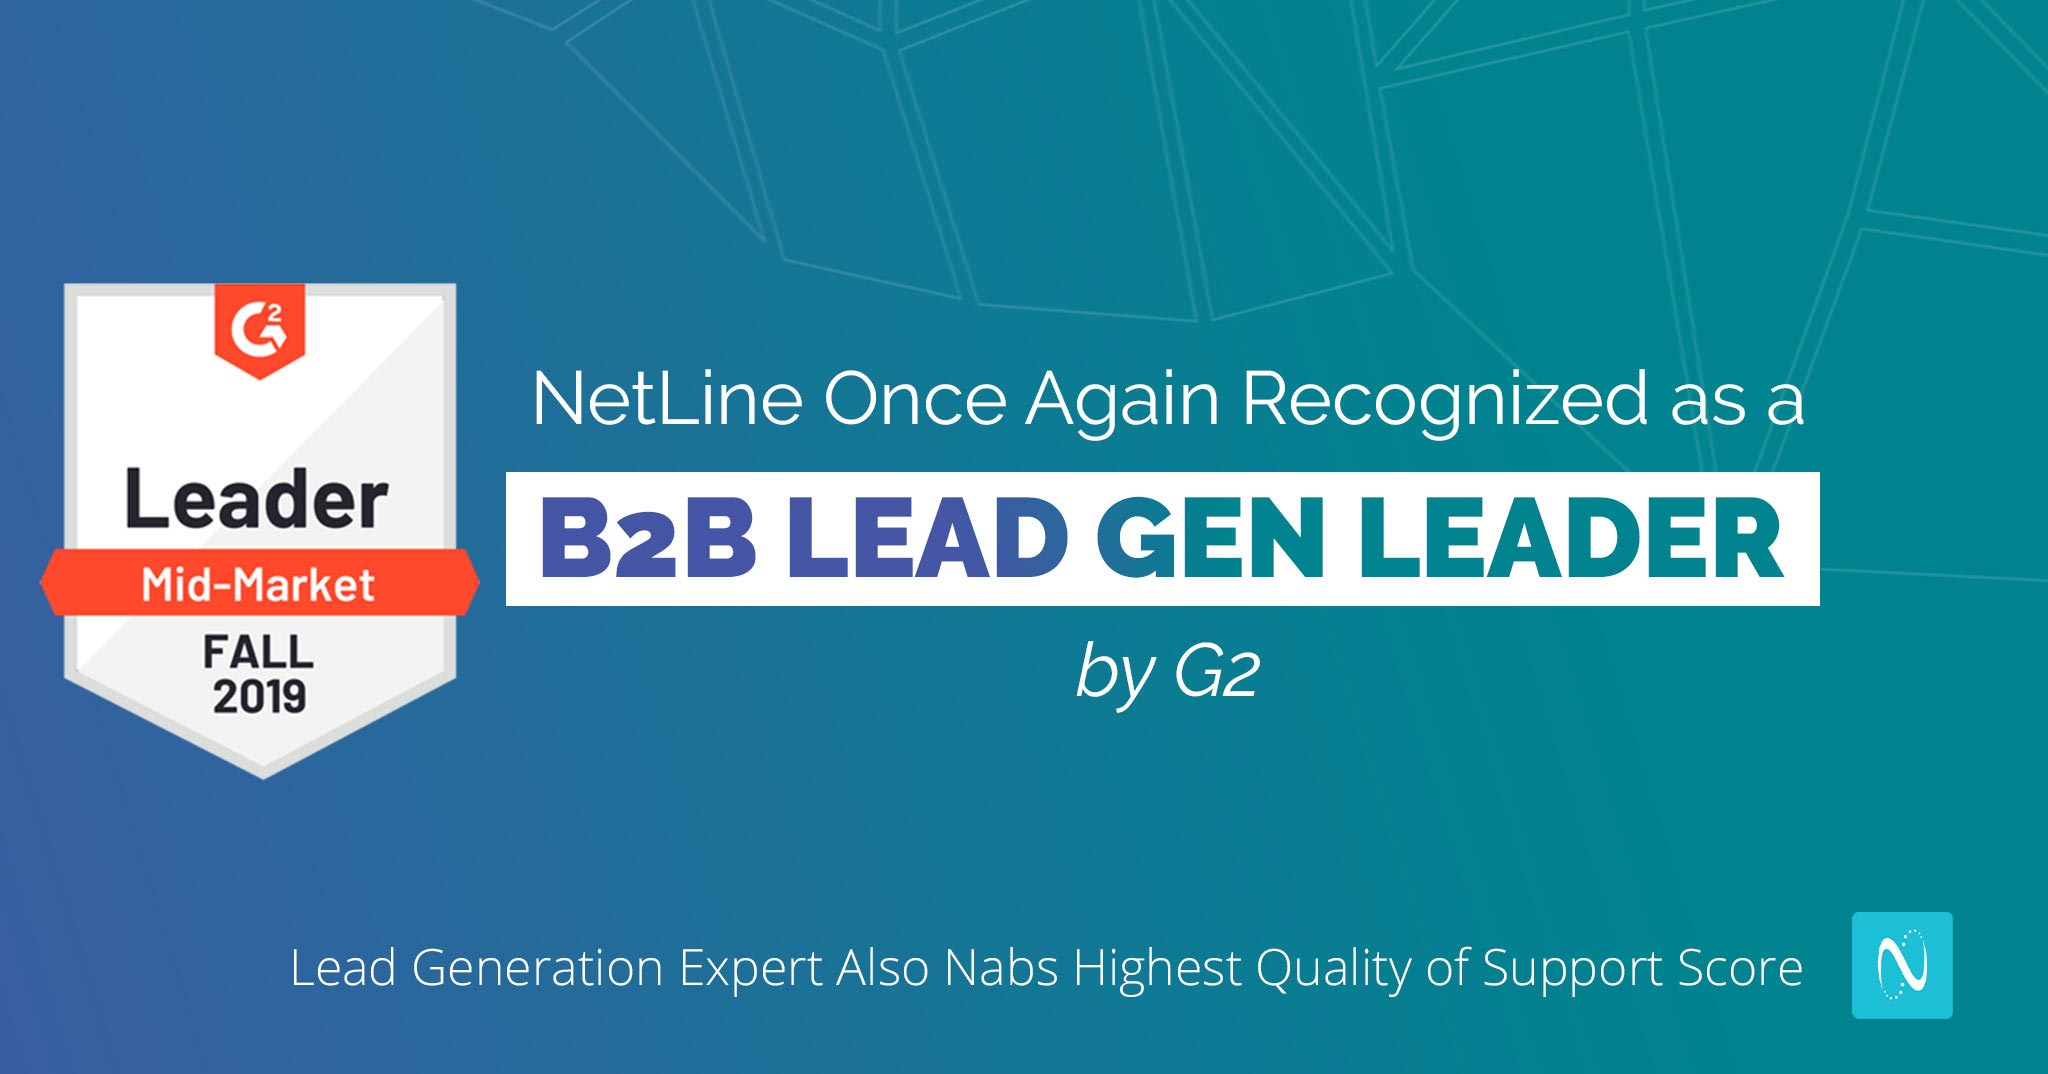 NetLine Once Again Recognized as a B2B Lead Gen Leader by G2